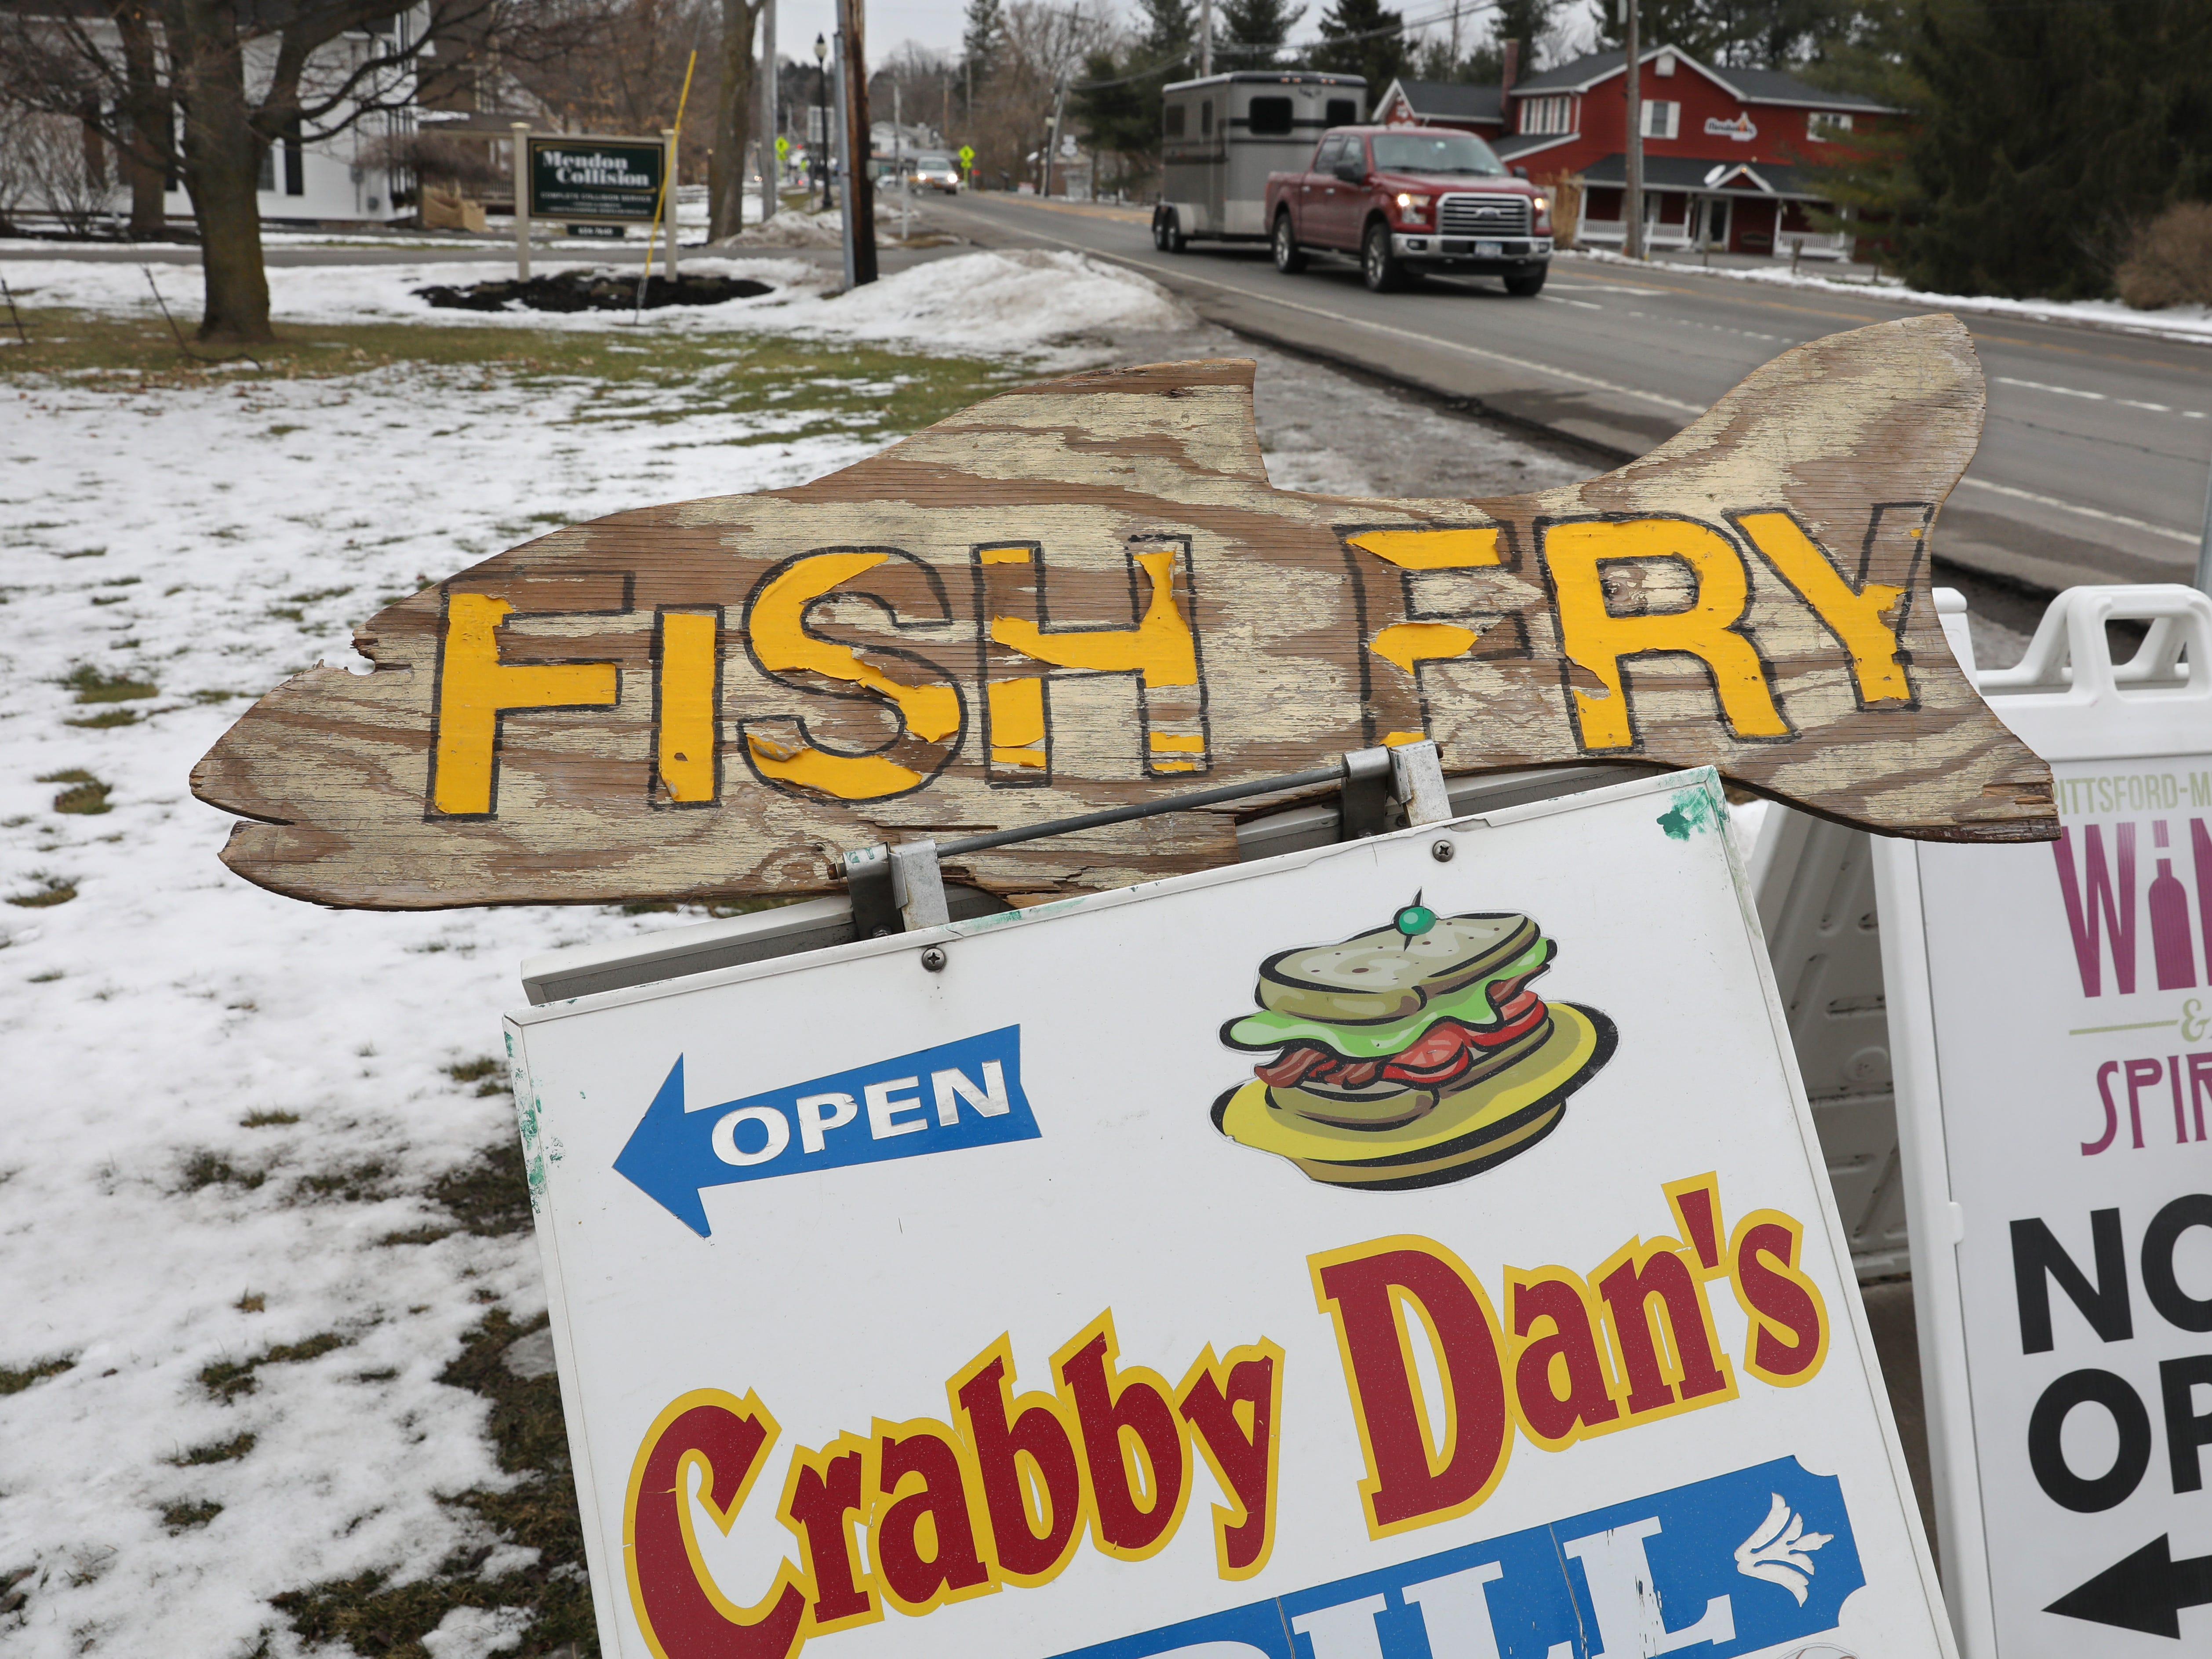 An A-frame sign points the way to the fish fry at Crabby Dan's Grill in Mendon.